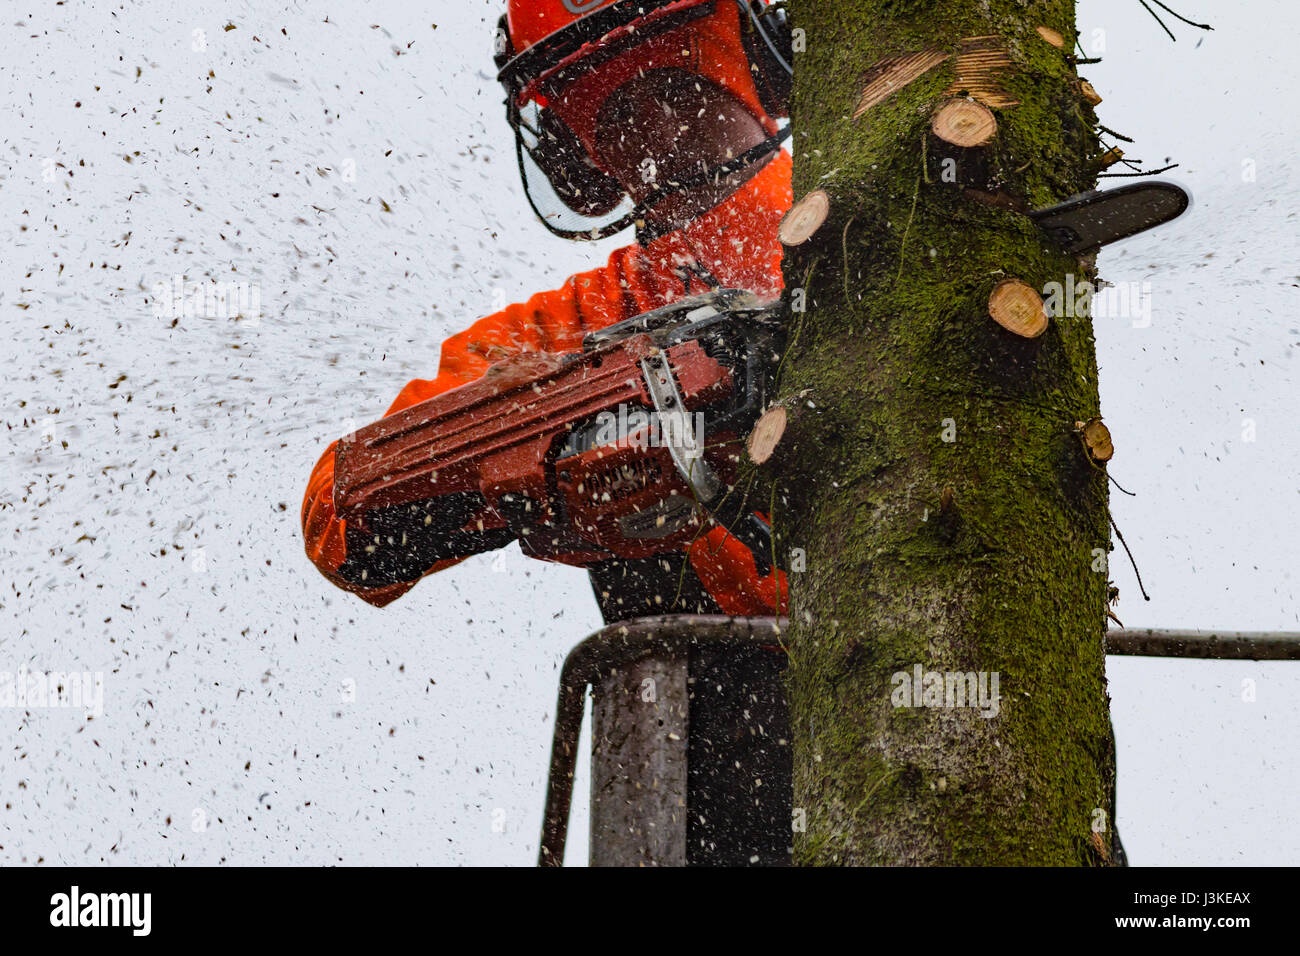 Woodcutter cutting tree with a chainsaw. - Stock Image